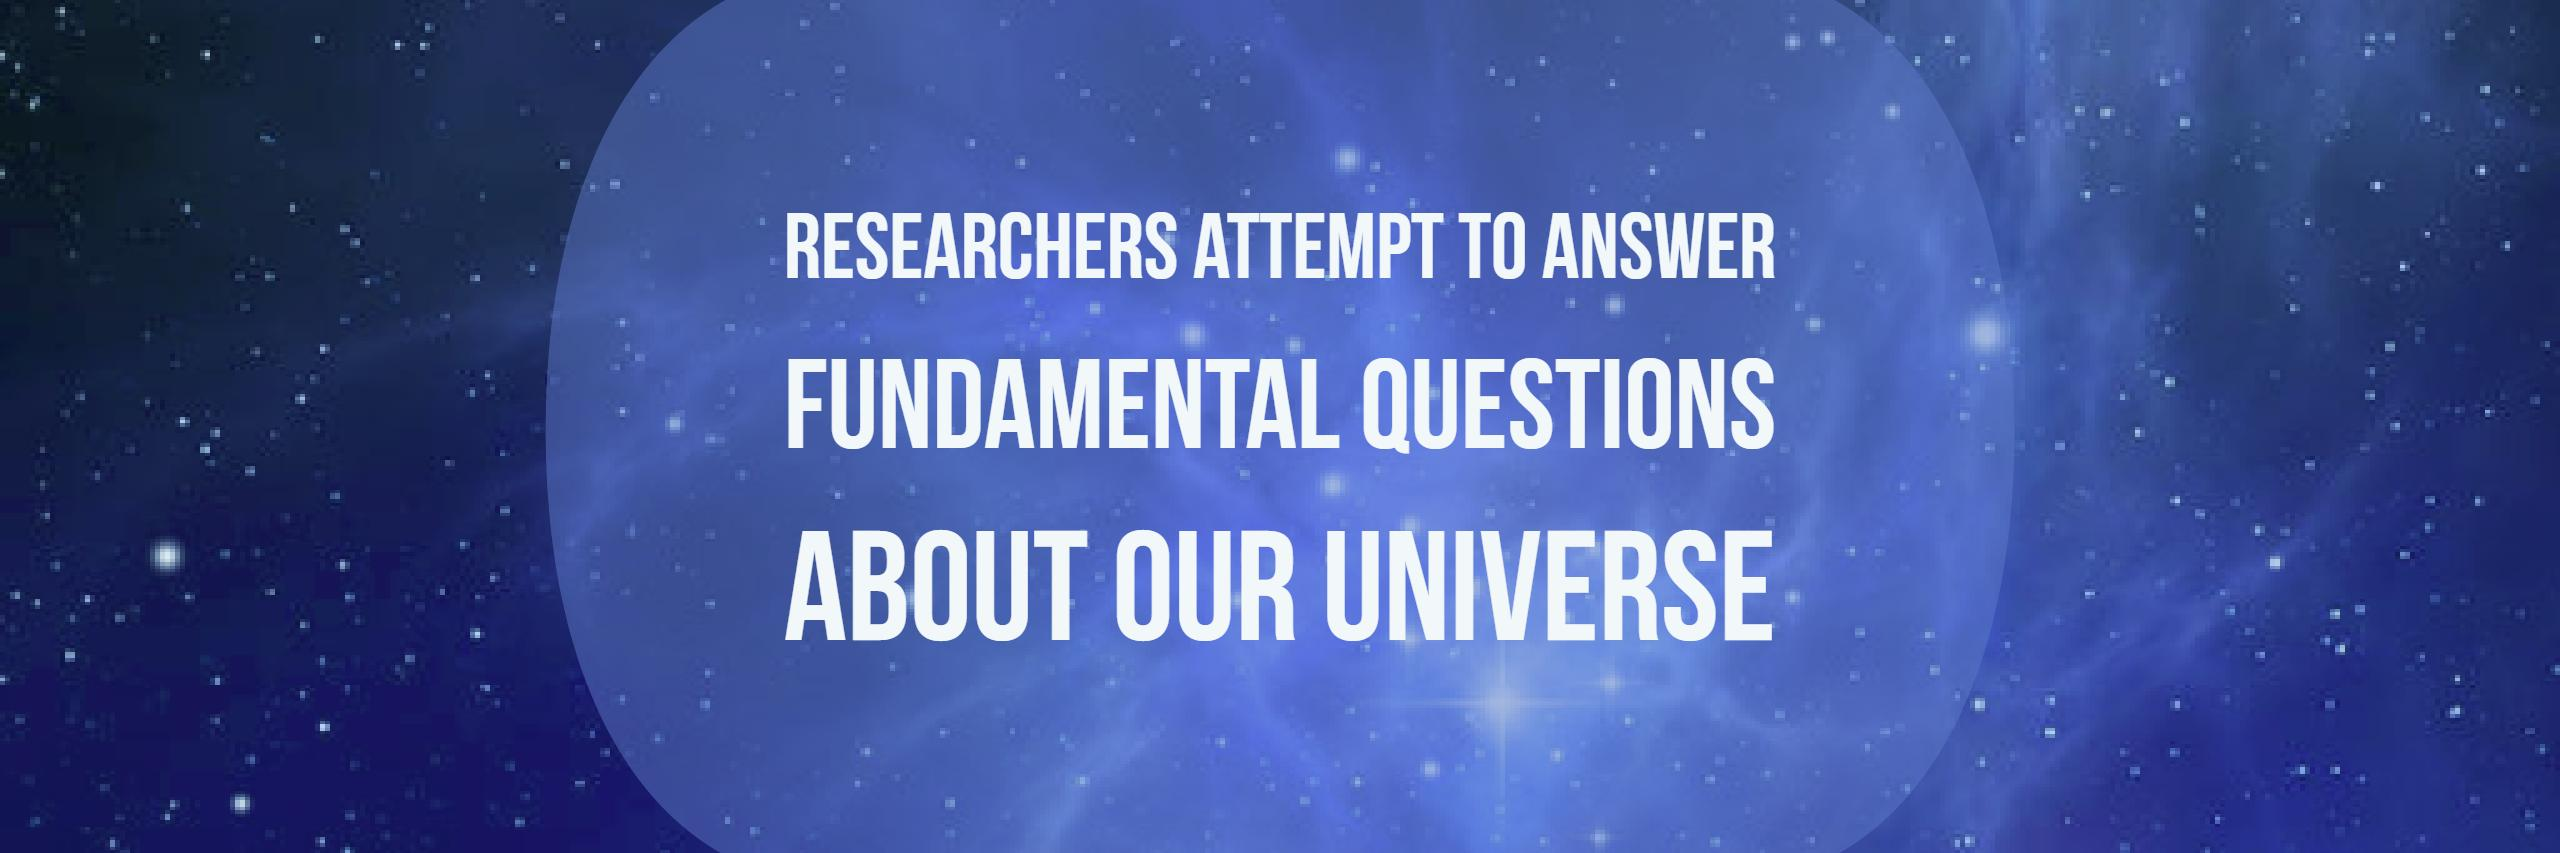 researchers attempt to answer fundamental questions about our